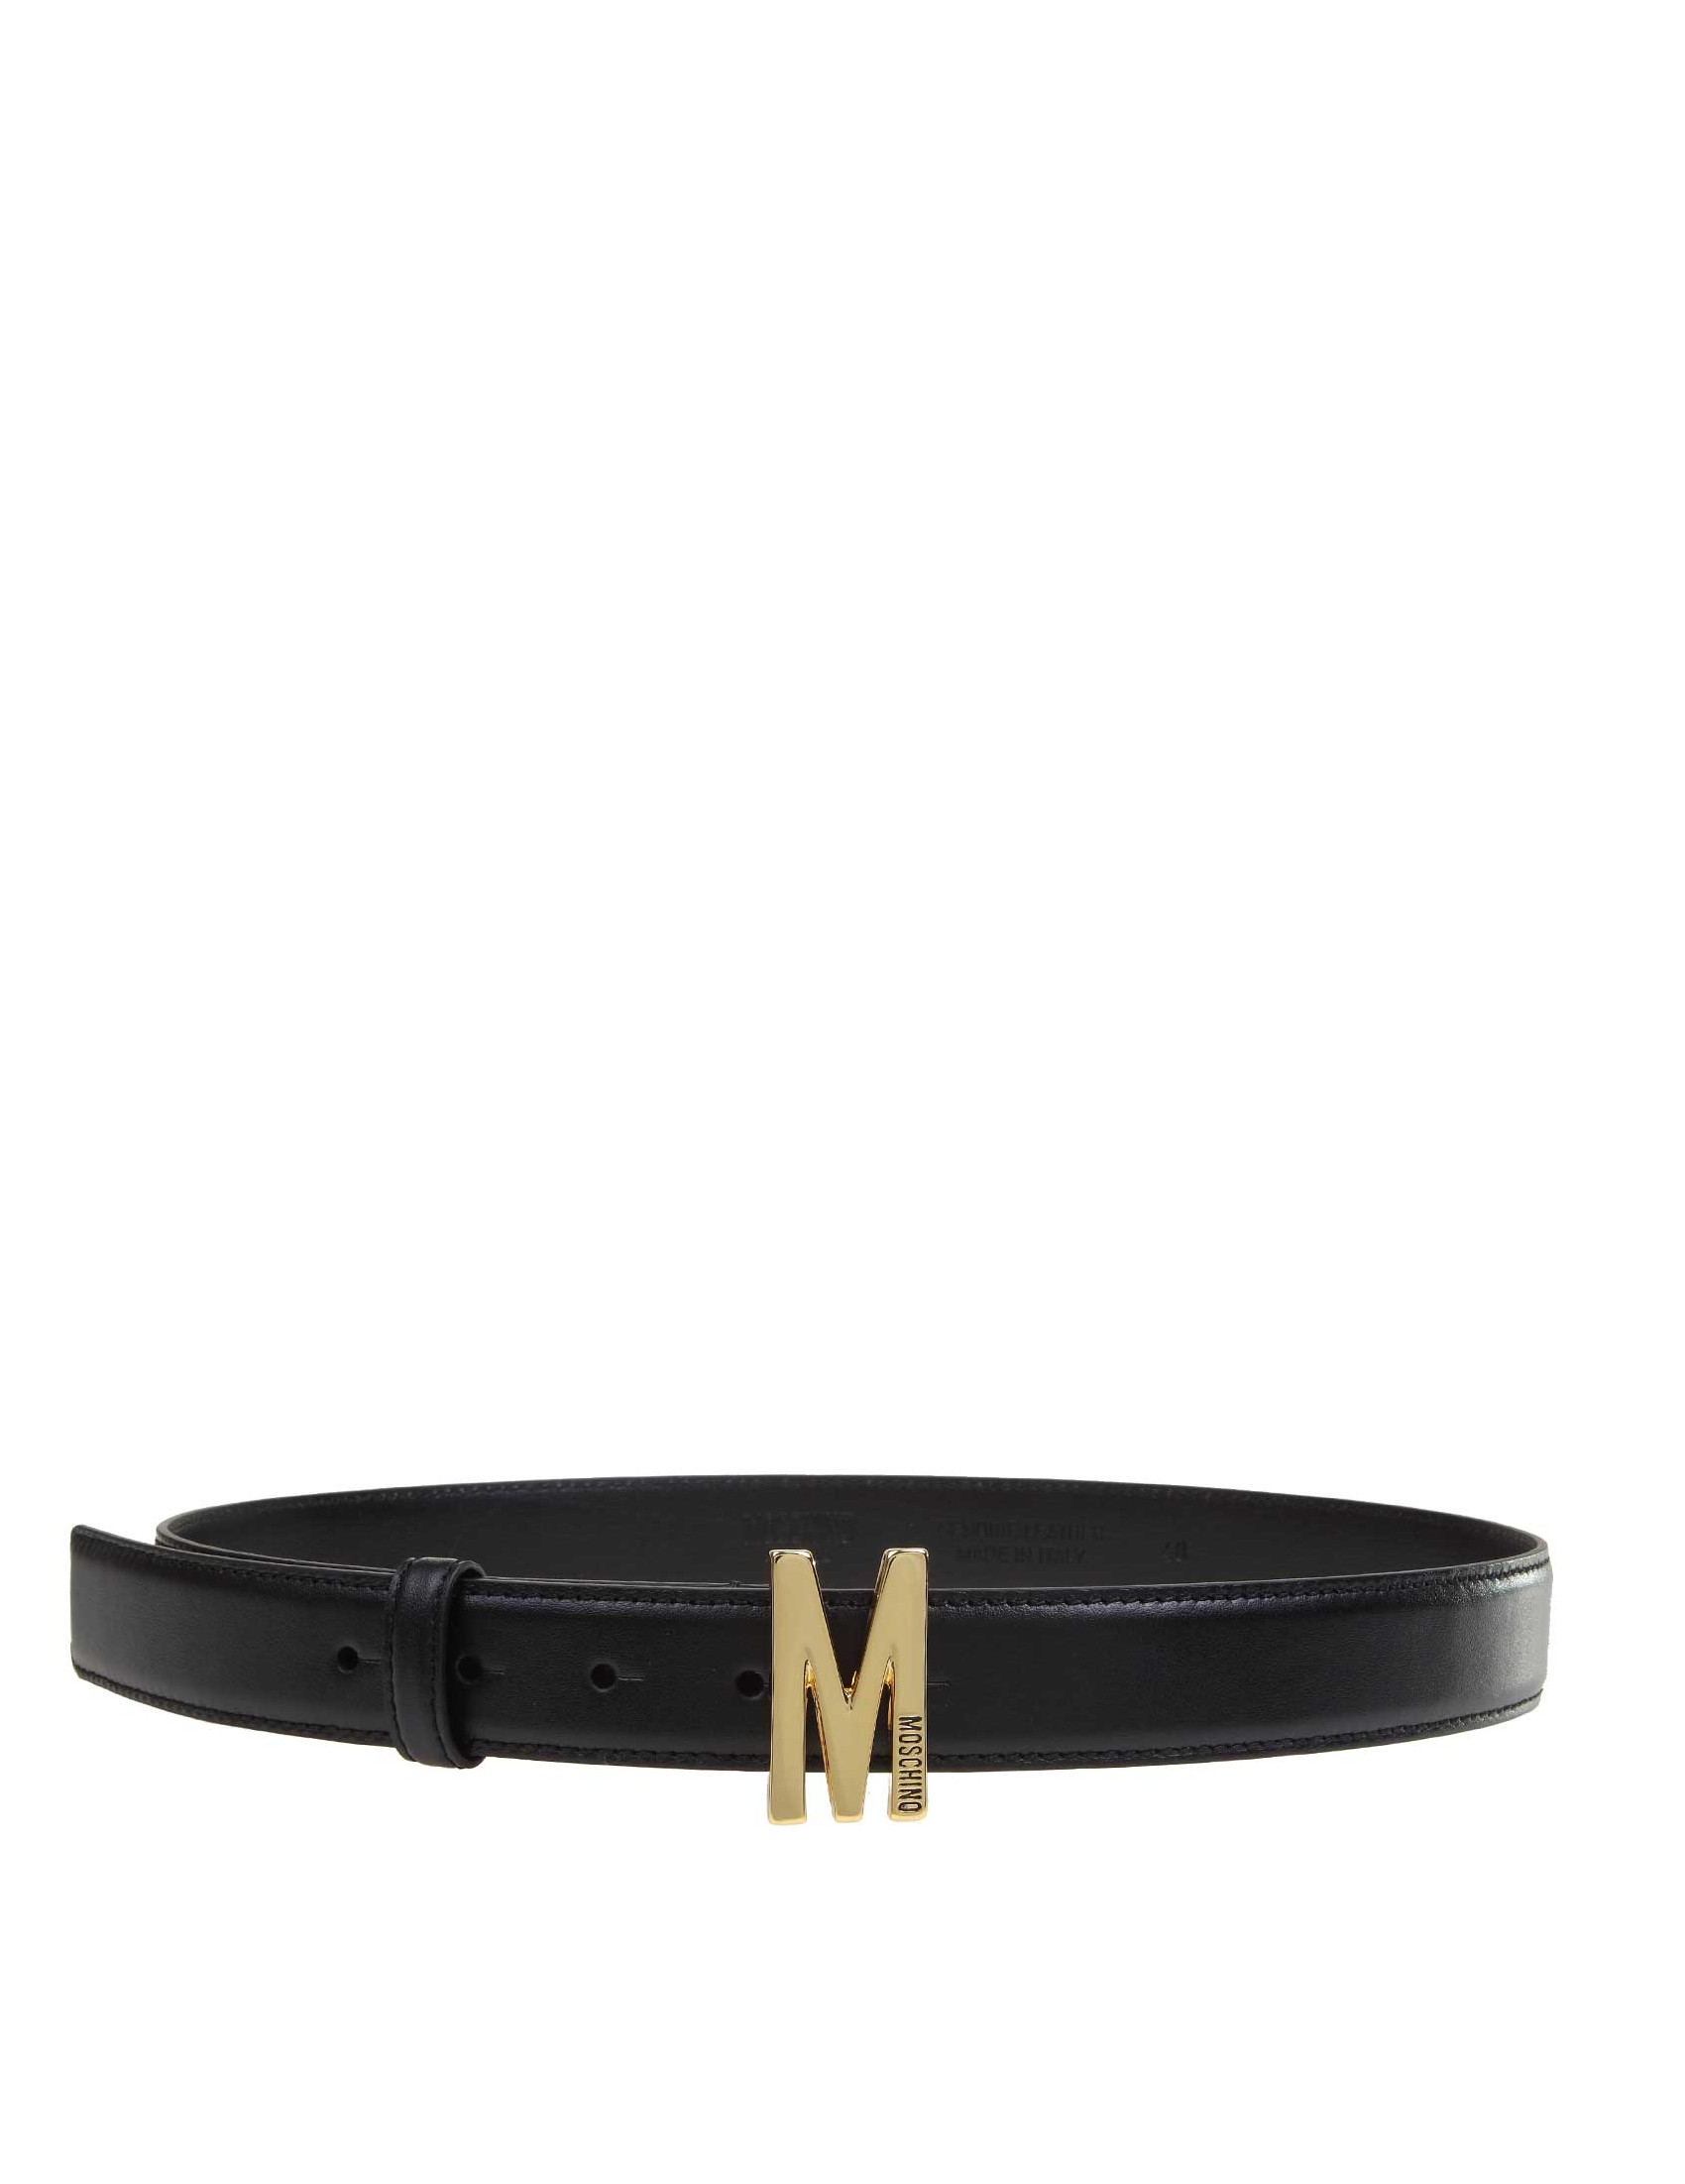 Details about MOSCHINO Men's Belts Black NIB Authentic